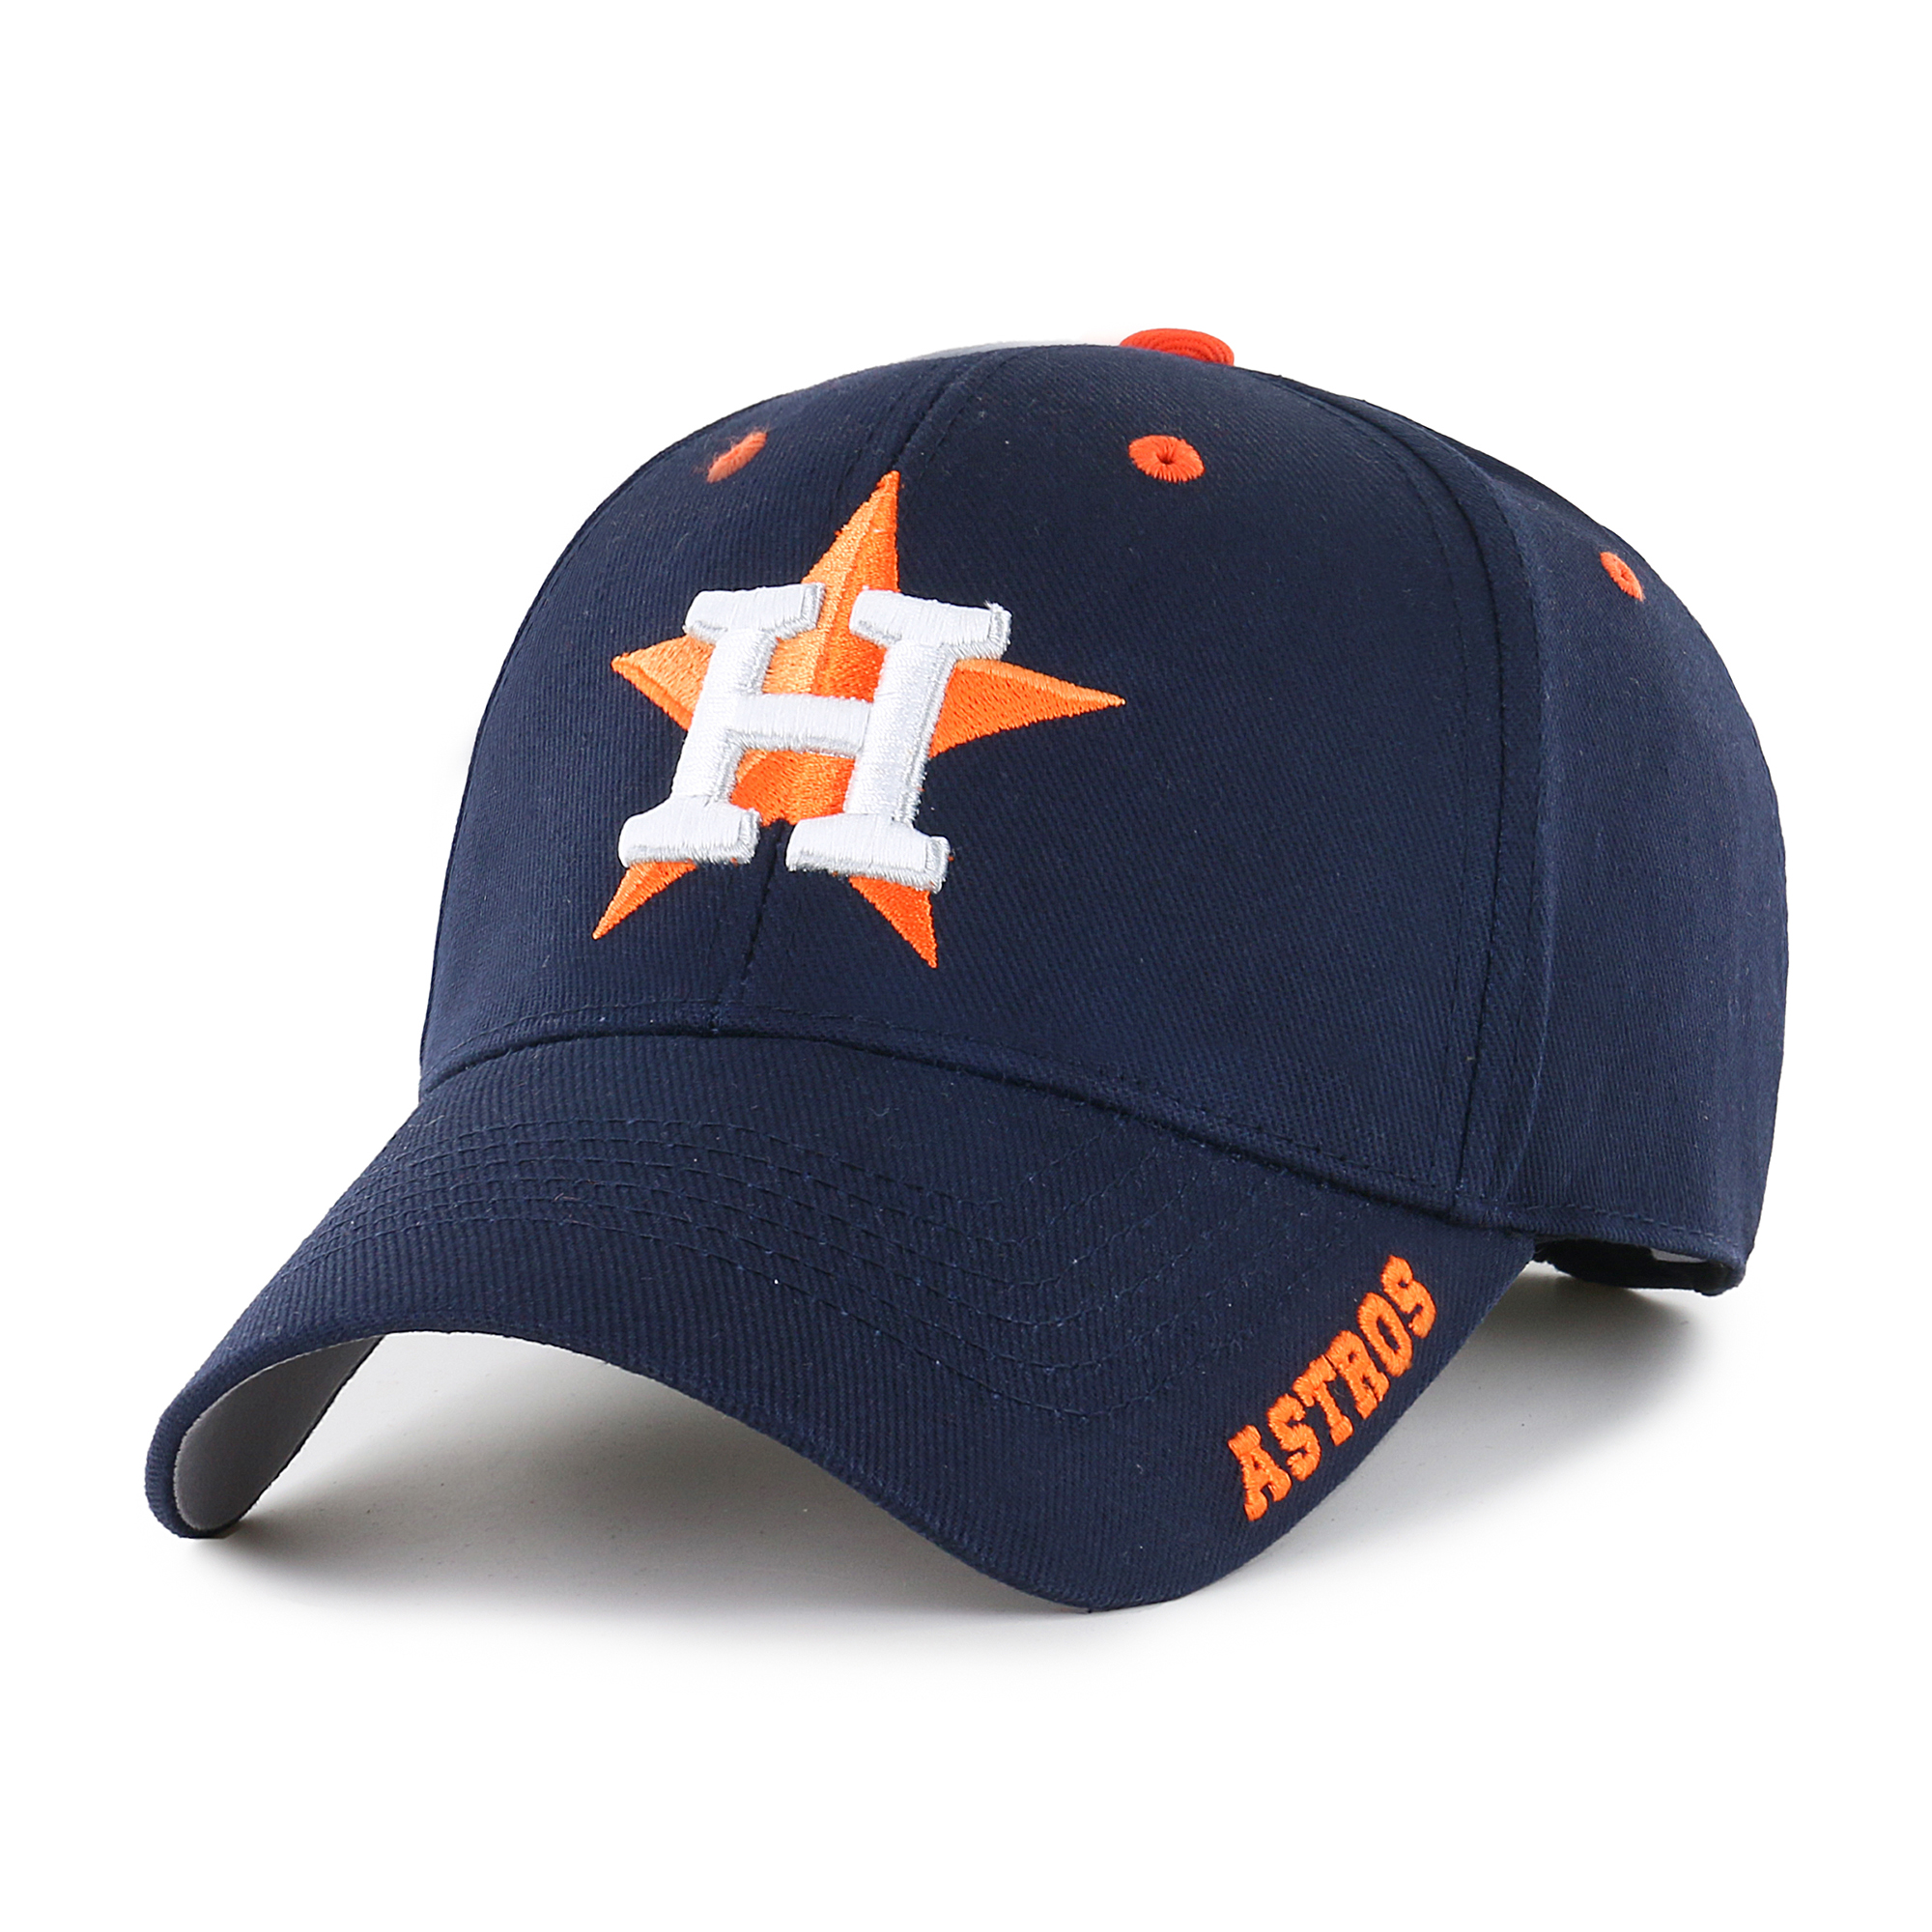 dc59e52031a12 Houston Astros Team Shop - Walmart.com